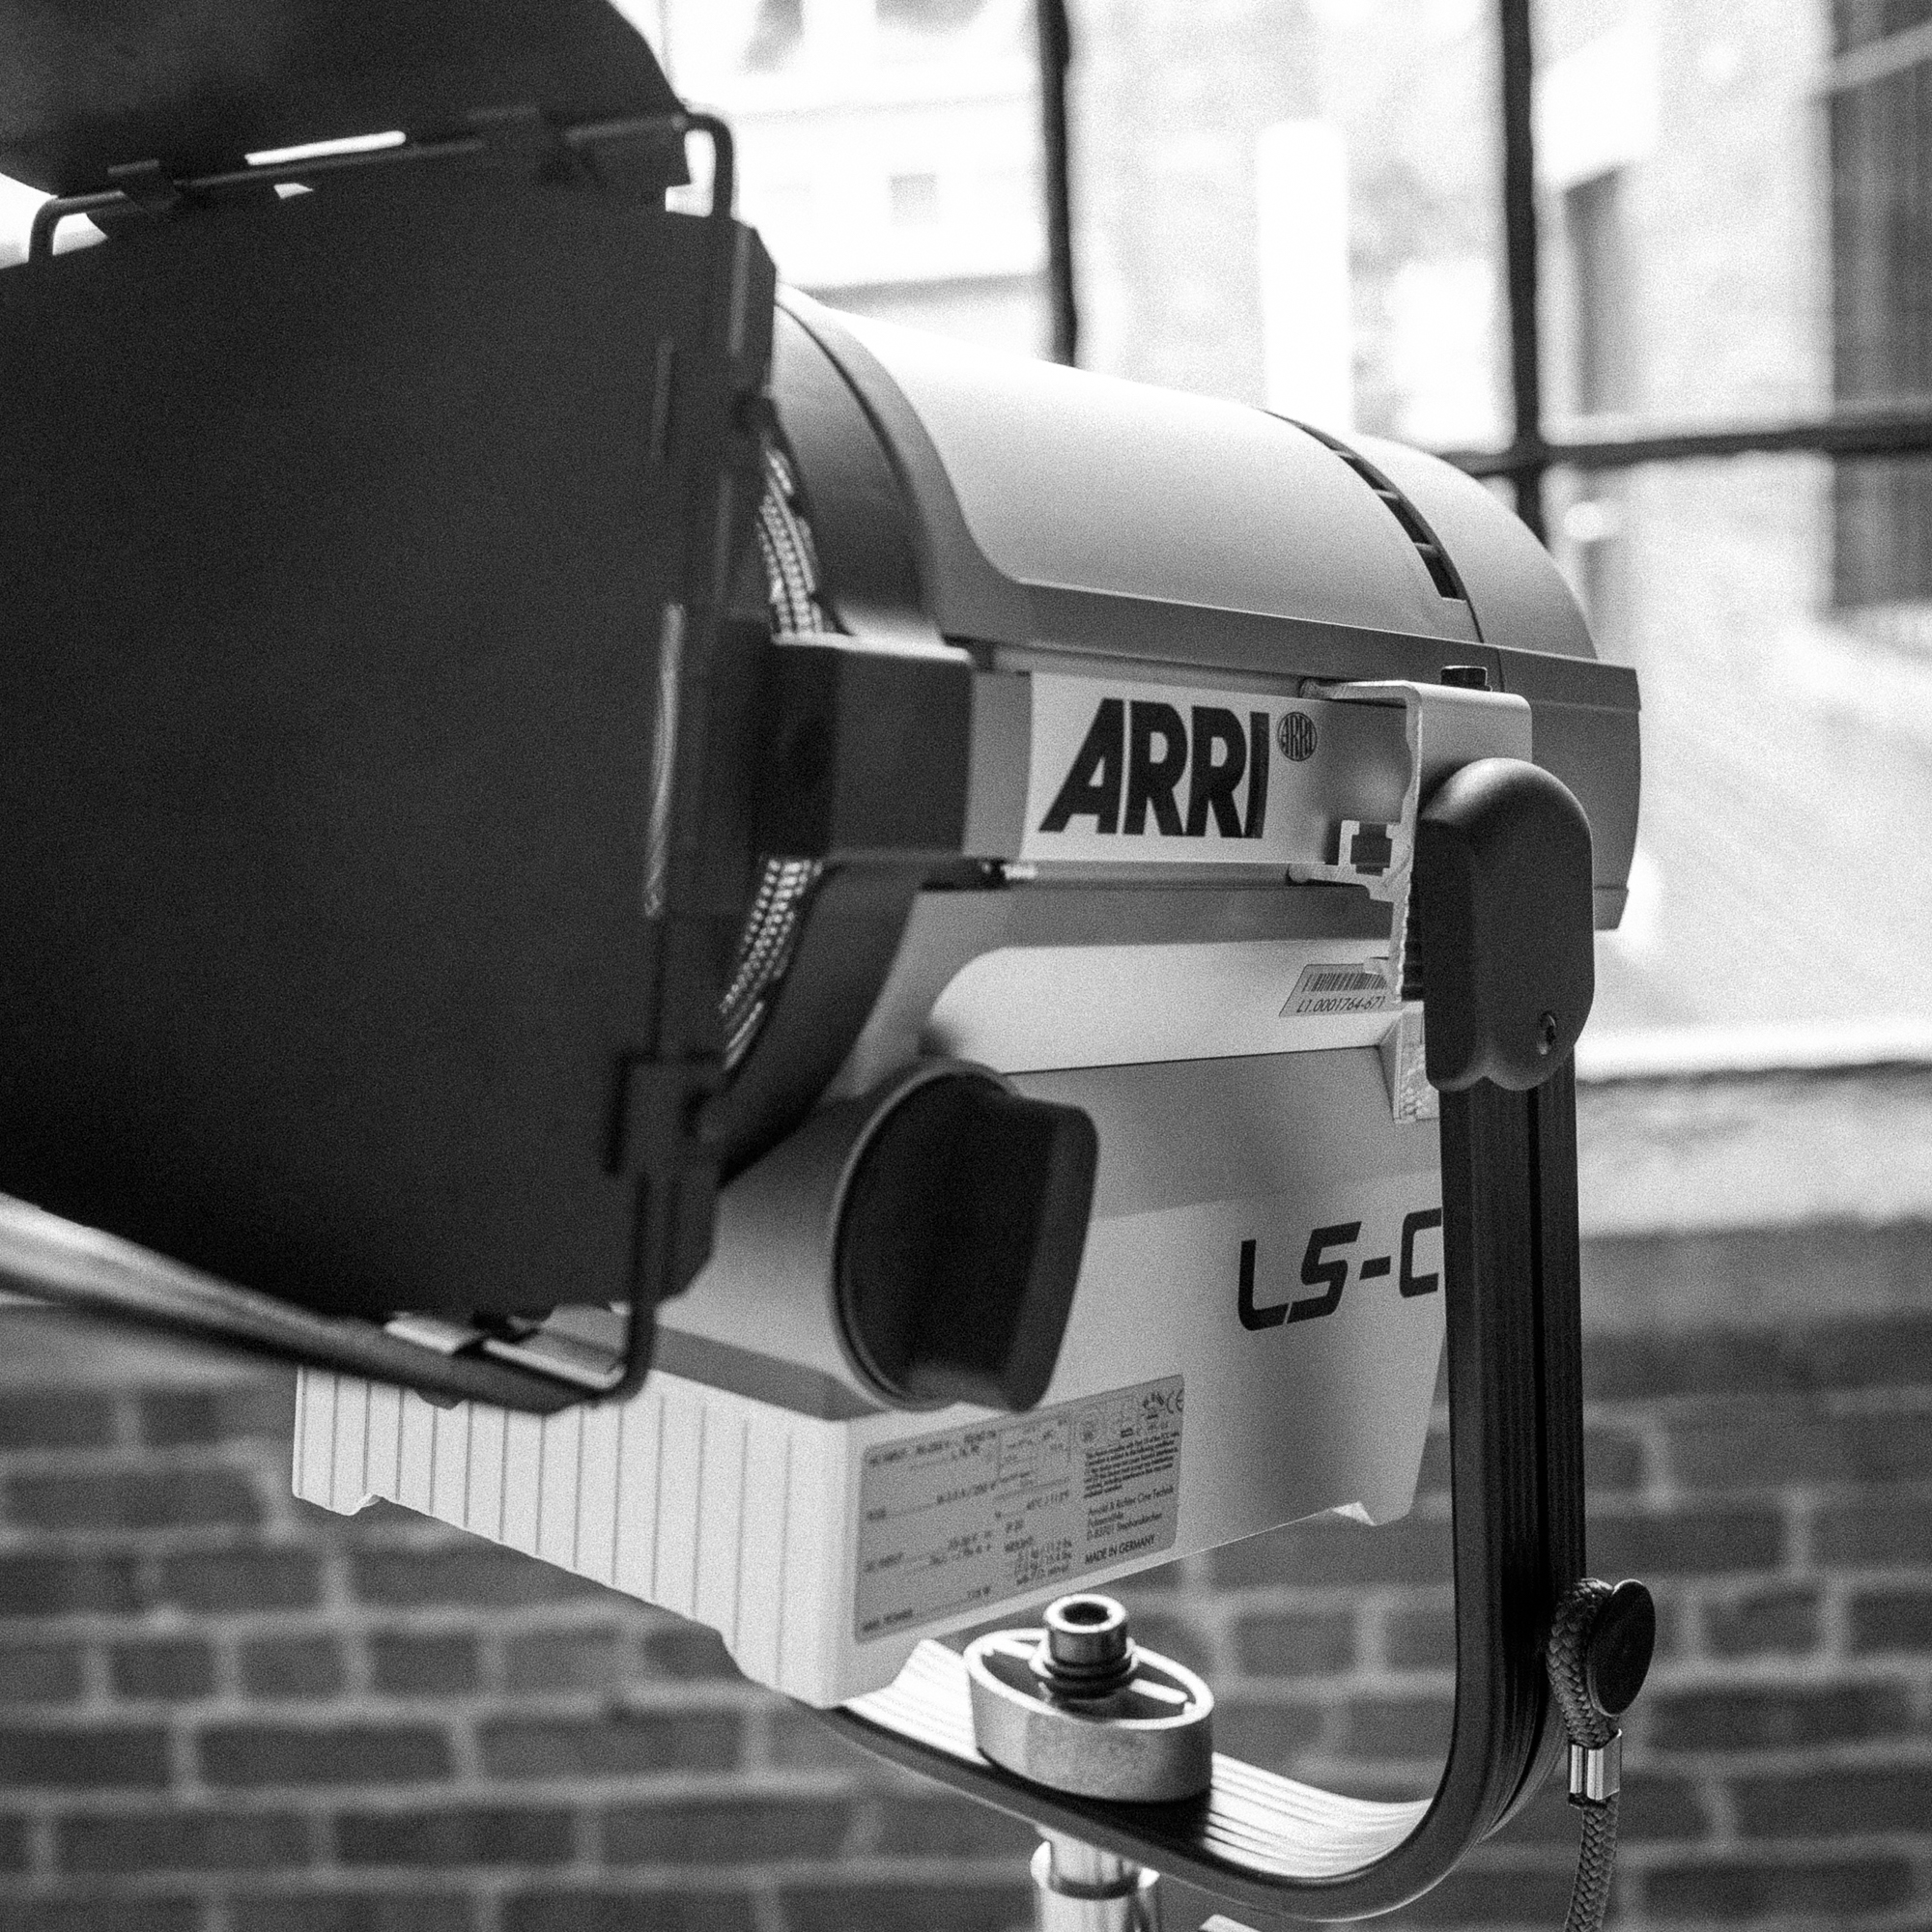 Arri L5-C LED Fresnel   60/day, 240/week, 30/day in studio   500W equivalent, fully color adjustable (Color temperature, plus minus green, and full hue saturation control) 100W power draw. DMX enabled. Weather sealed.